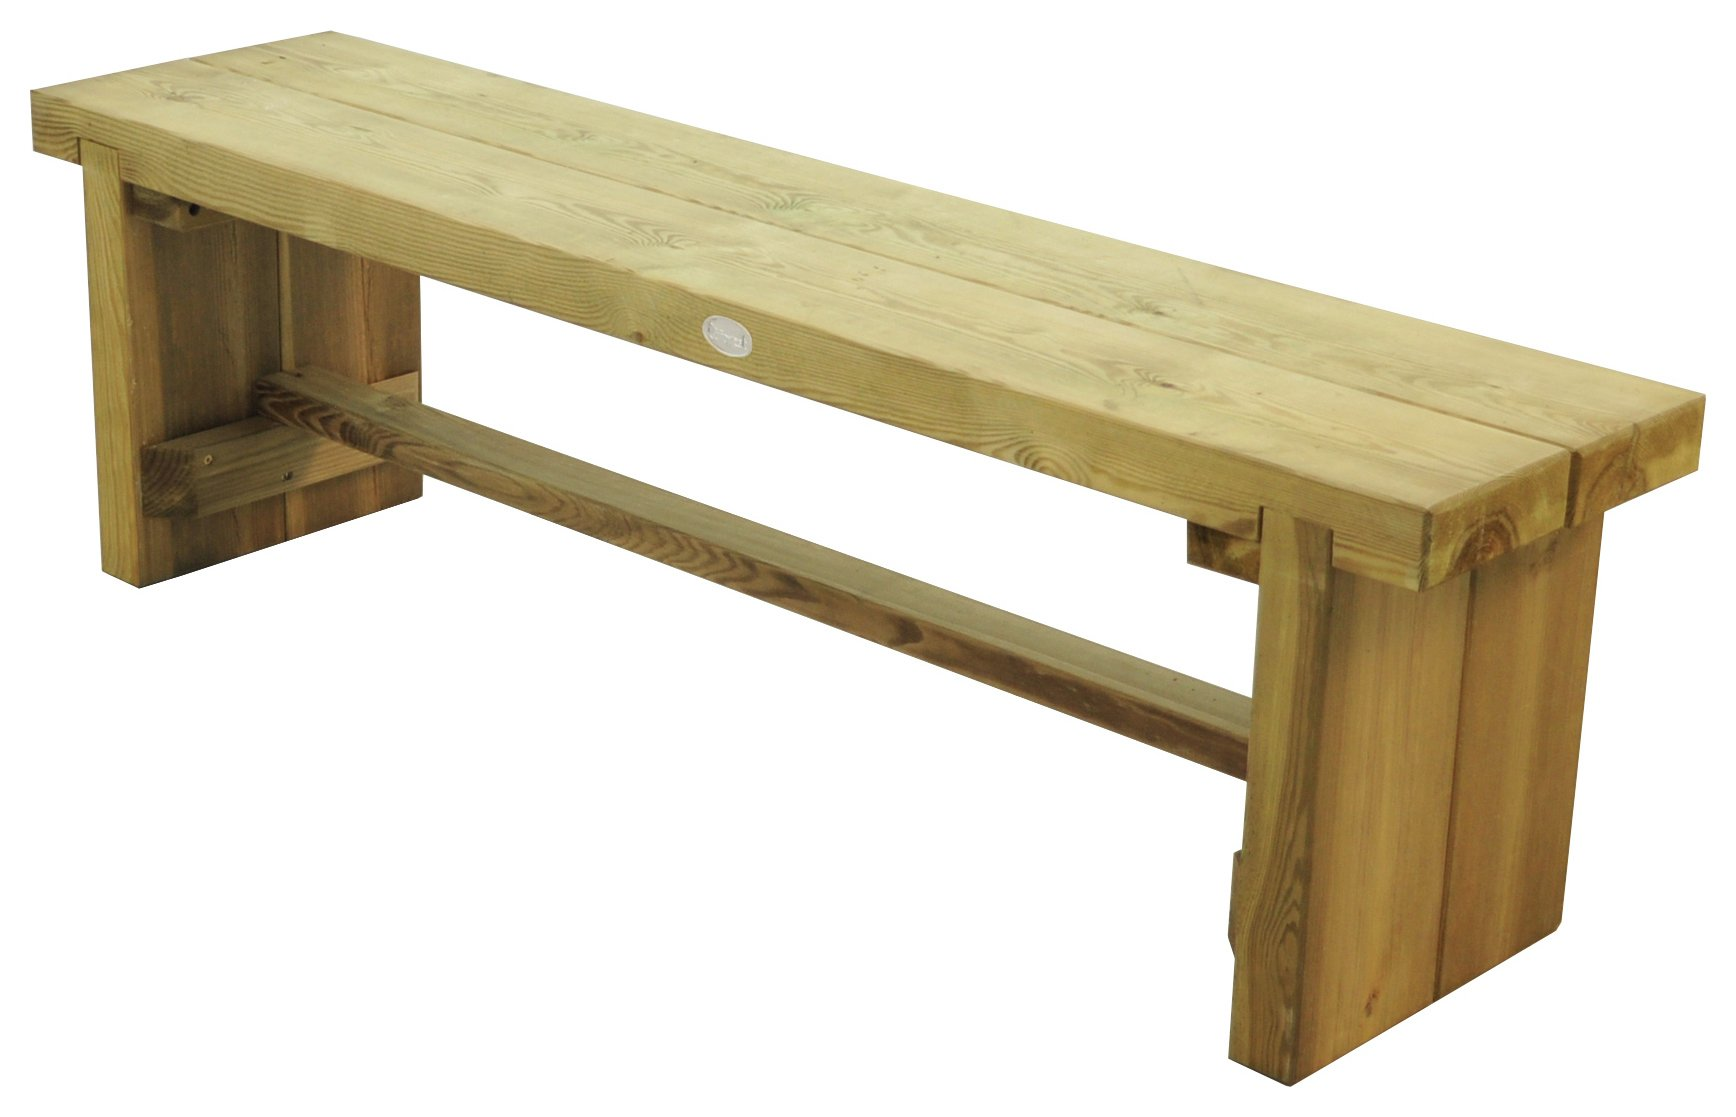 Image of Forest 1.5m Double Sleeper Bench.